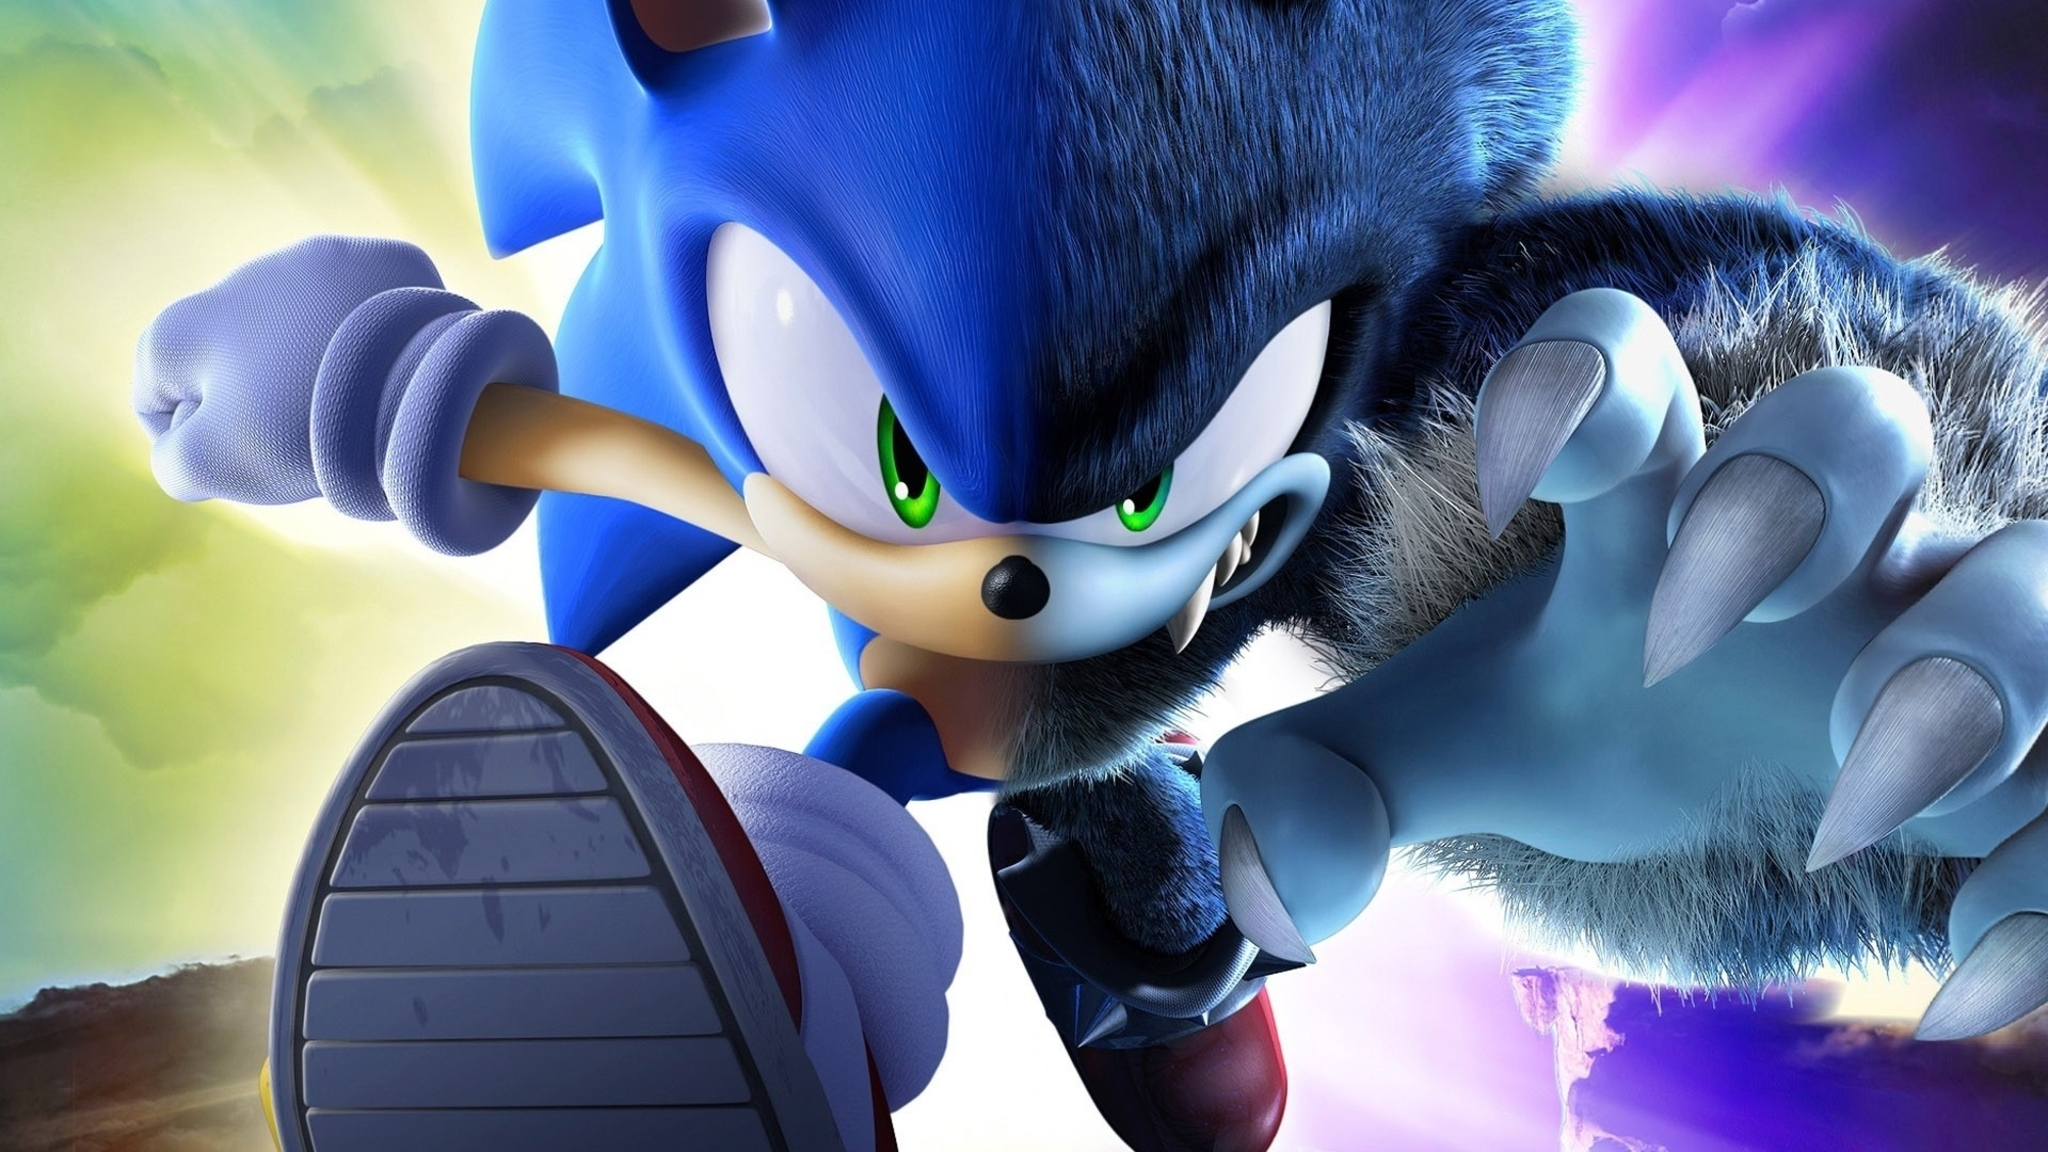 2048x1152 Sonic The Hedgehog 2048x1152 Resolution Hd 4k Wallpapers Images Backgrounds Photos And Pictures